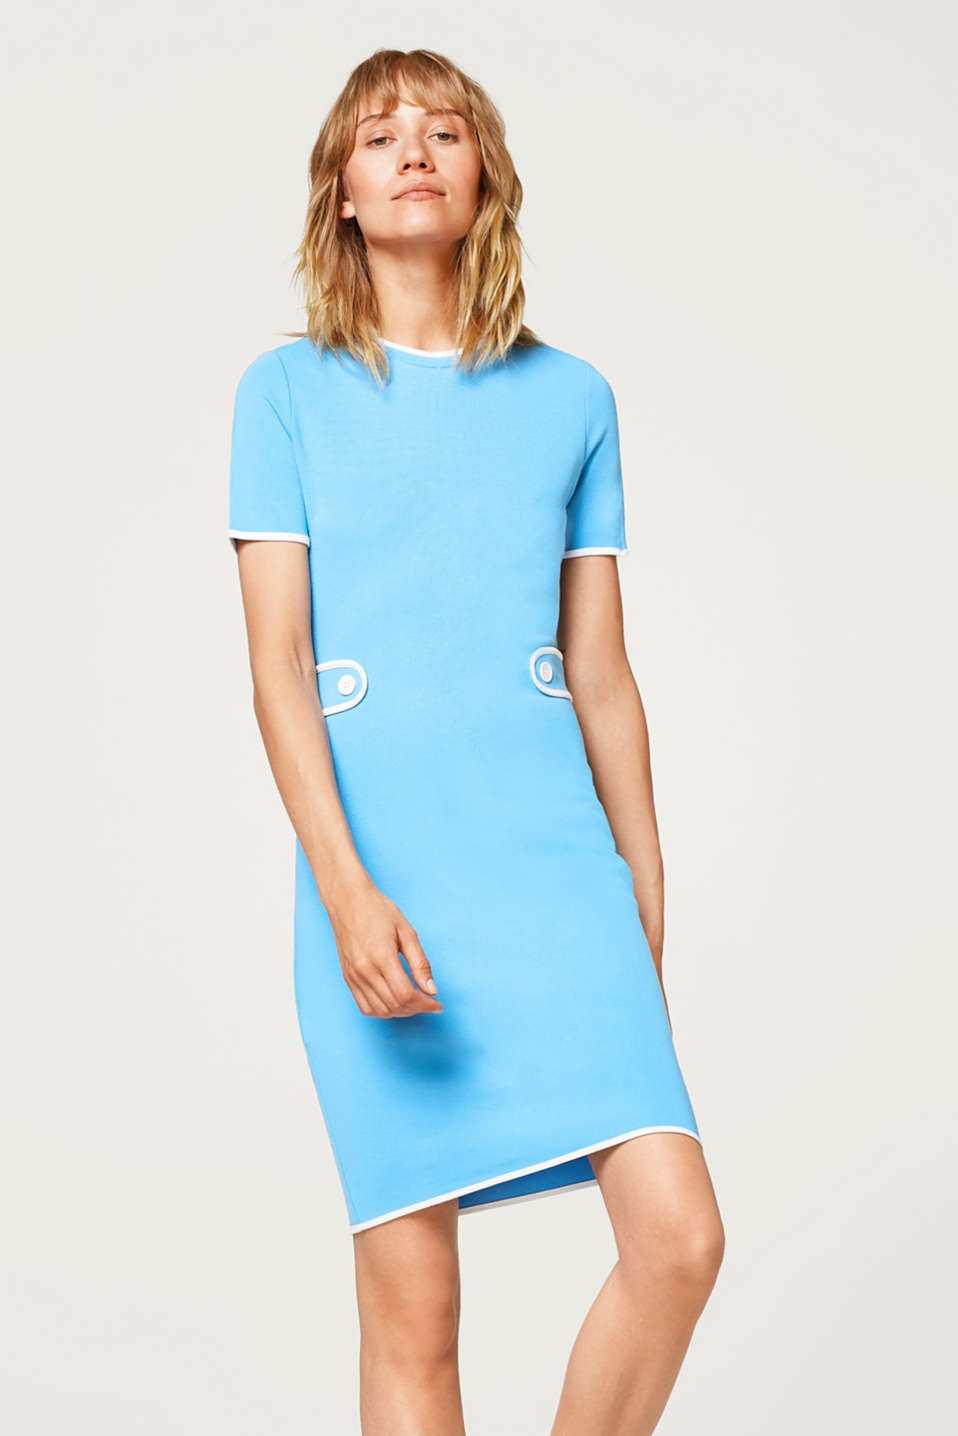 Esprit - Piped dress in a retro look, stretch jersey